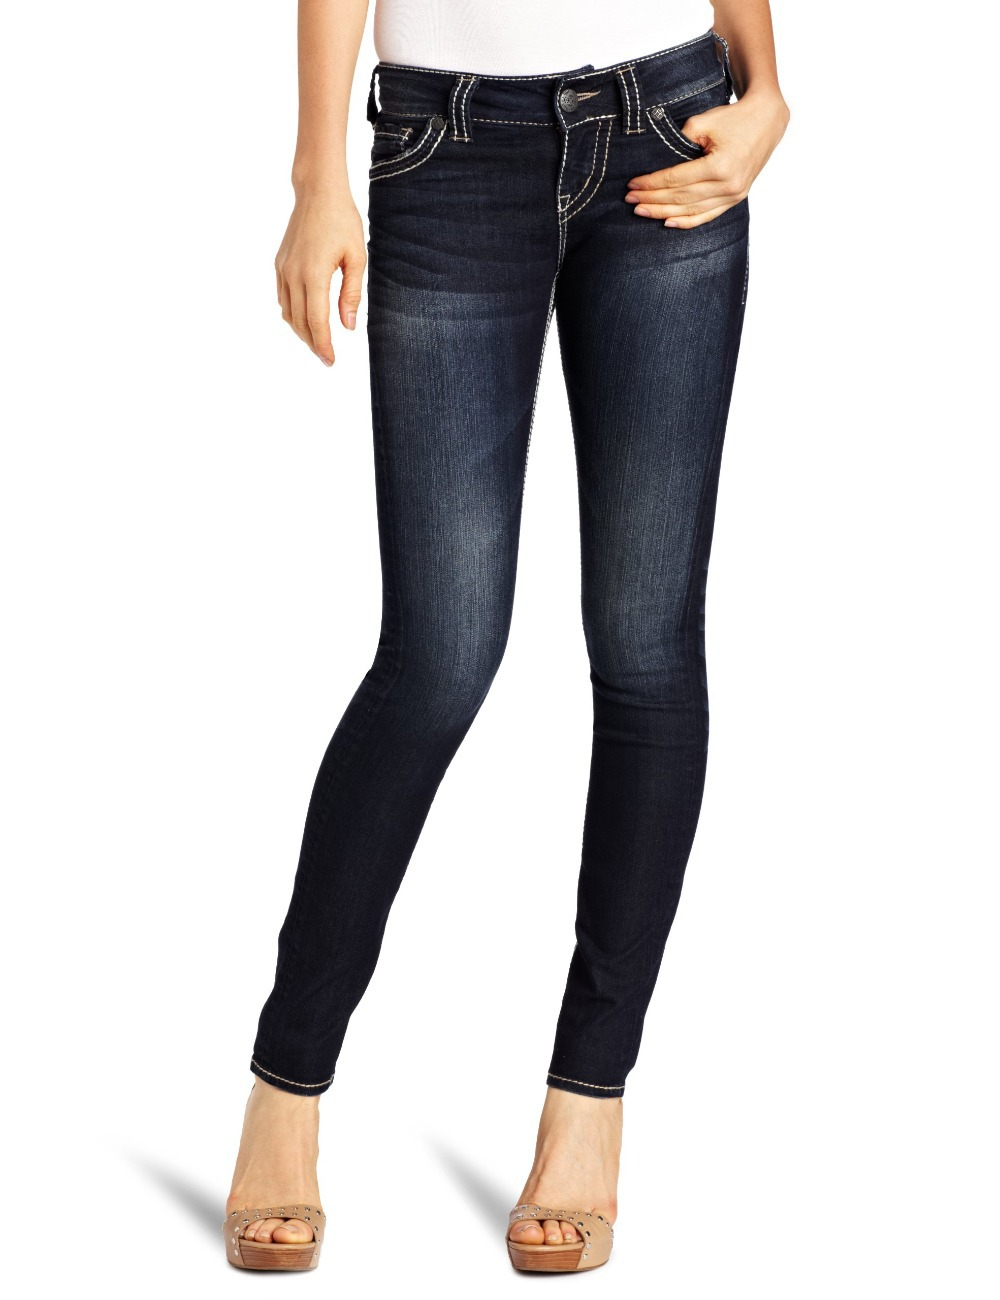 Compare Prices on Silver Jeans- Online Shopping/Buy Low Price